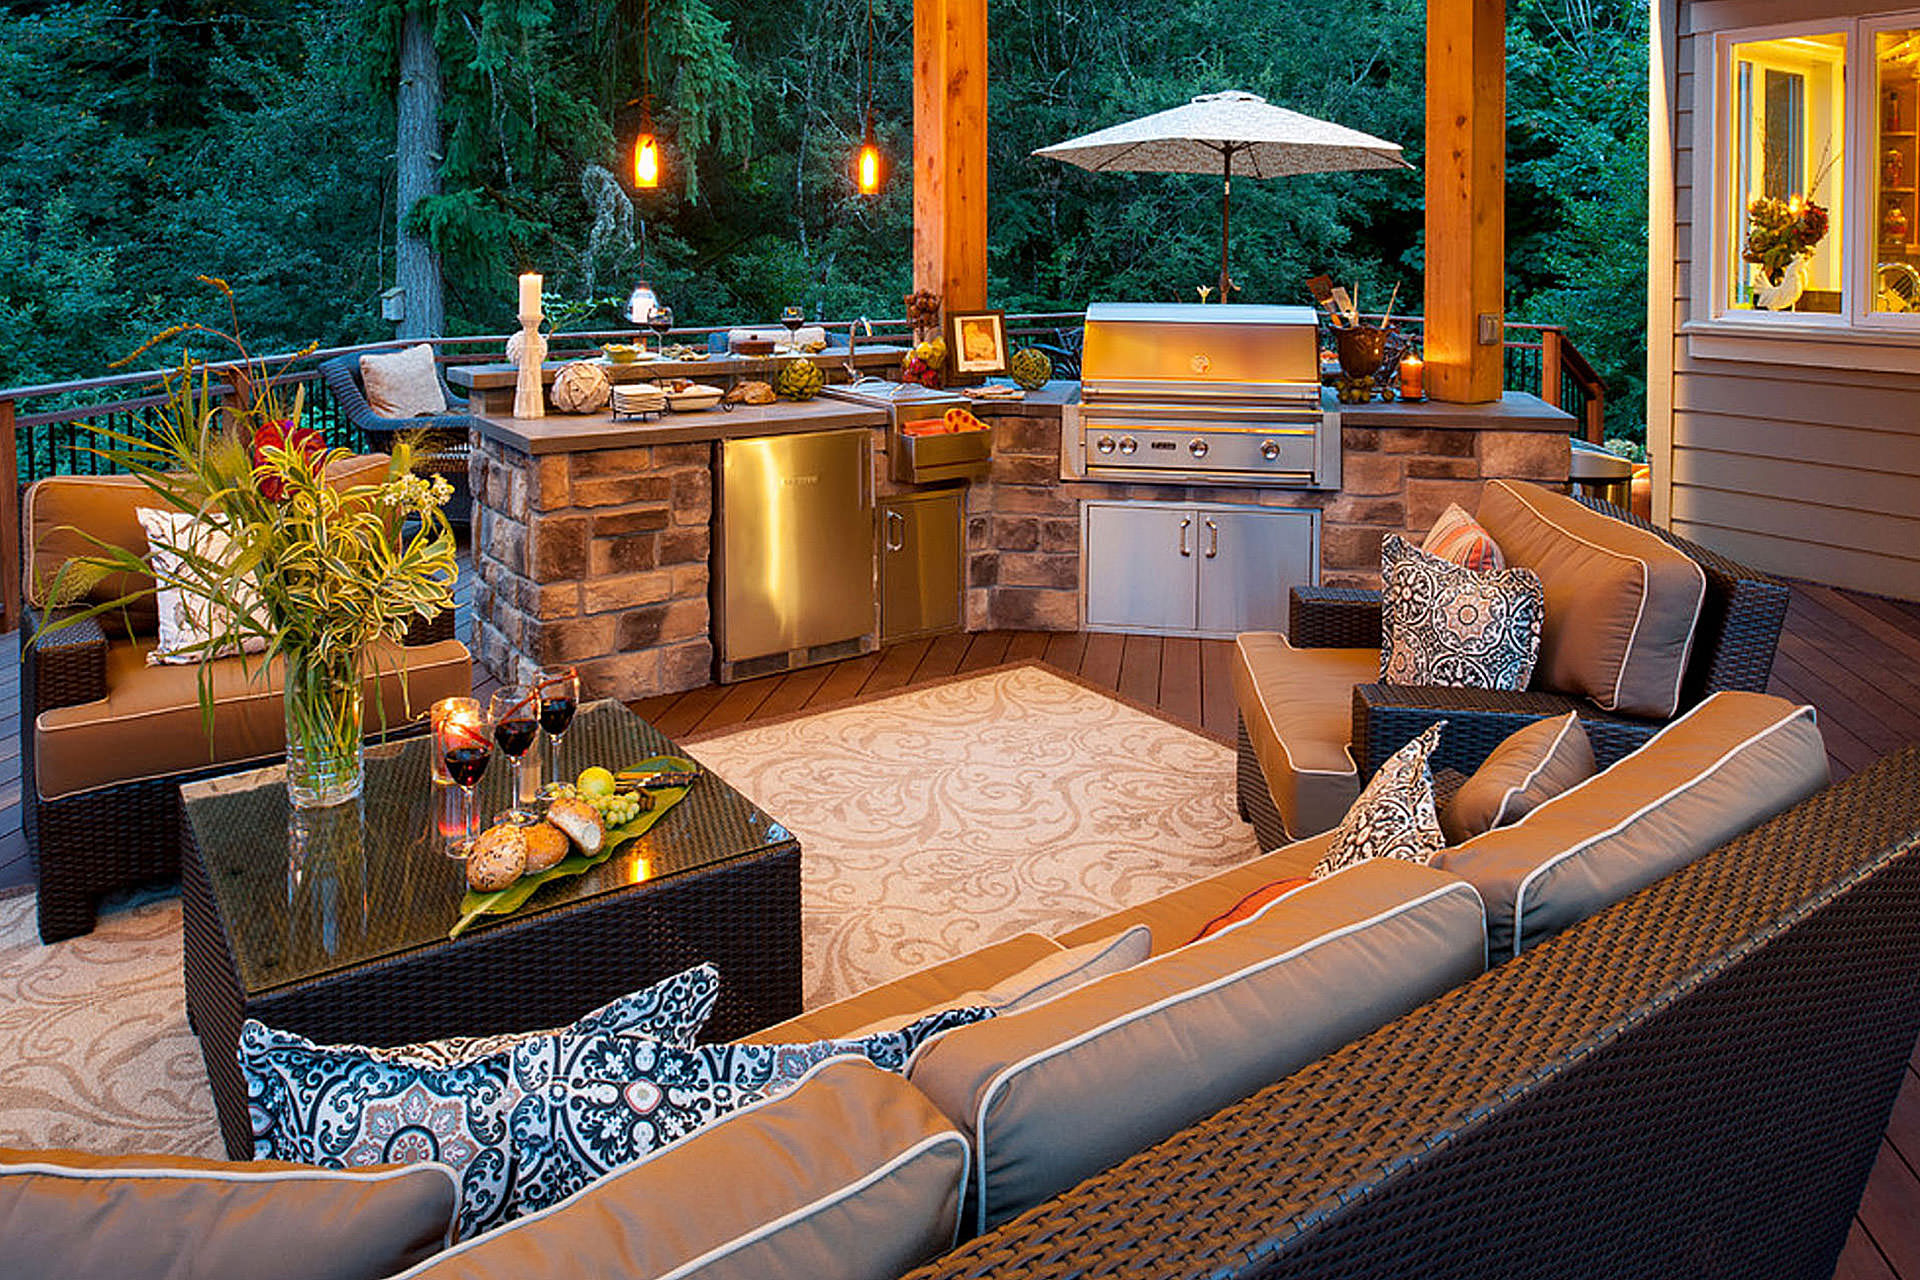 Outdoor Kitchen Furnishing